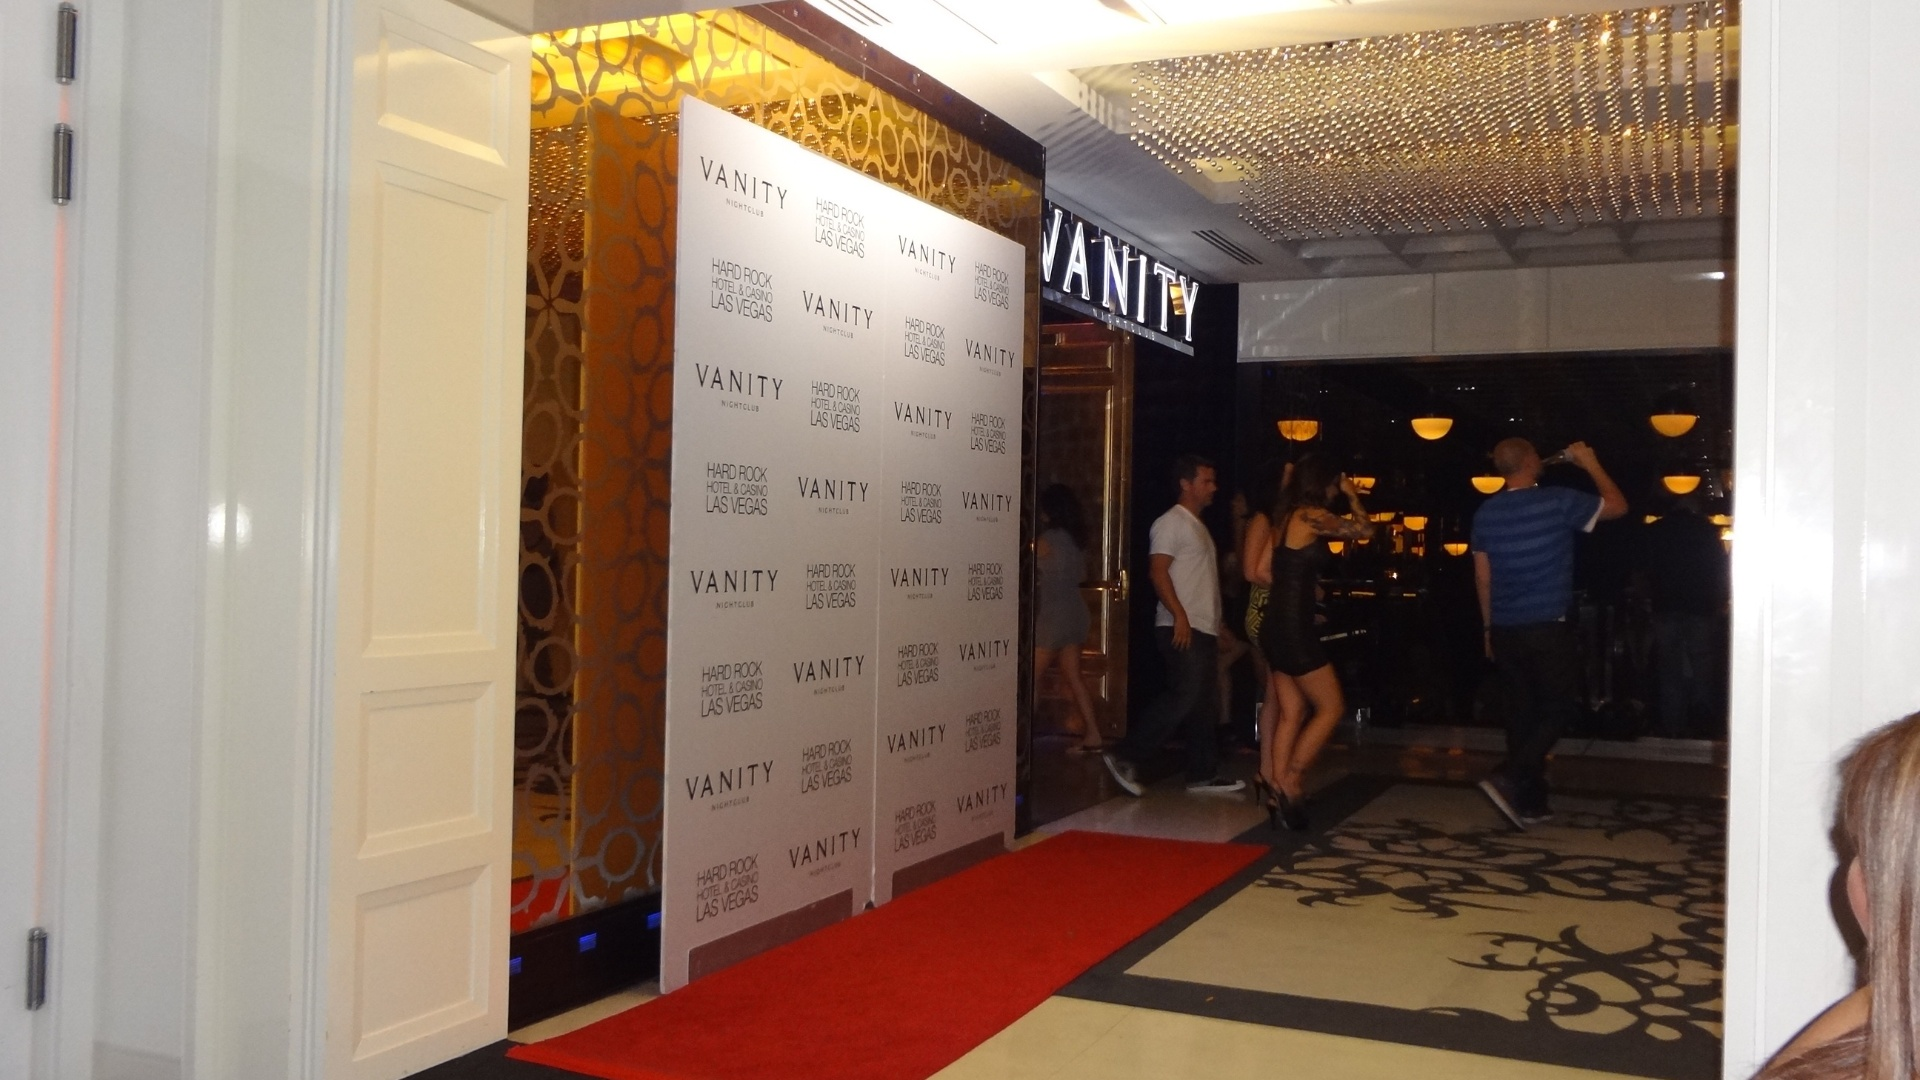 A Vanity Night Club fica no hotel-cassino Hard Rock